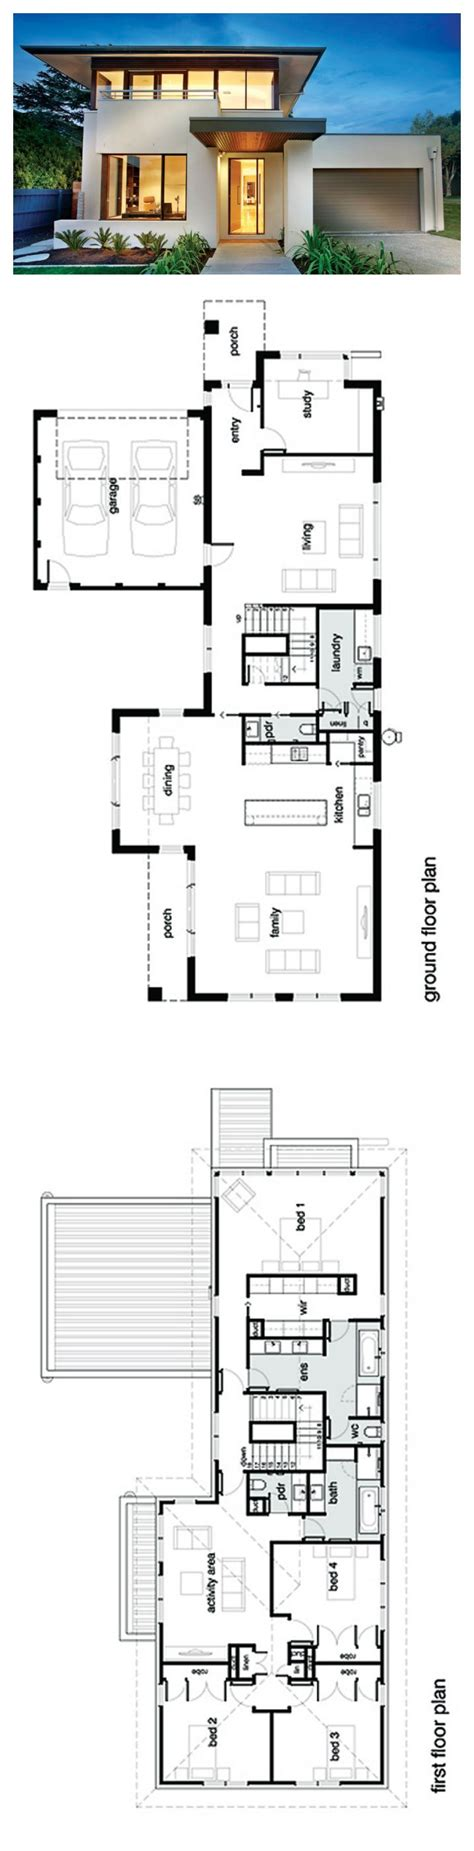 2 story villa floor plans best 25 modern house plans ideas on modern